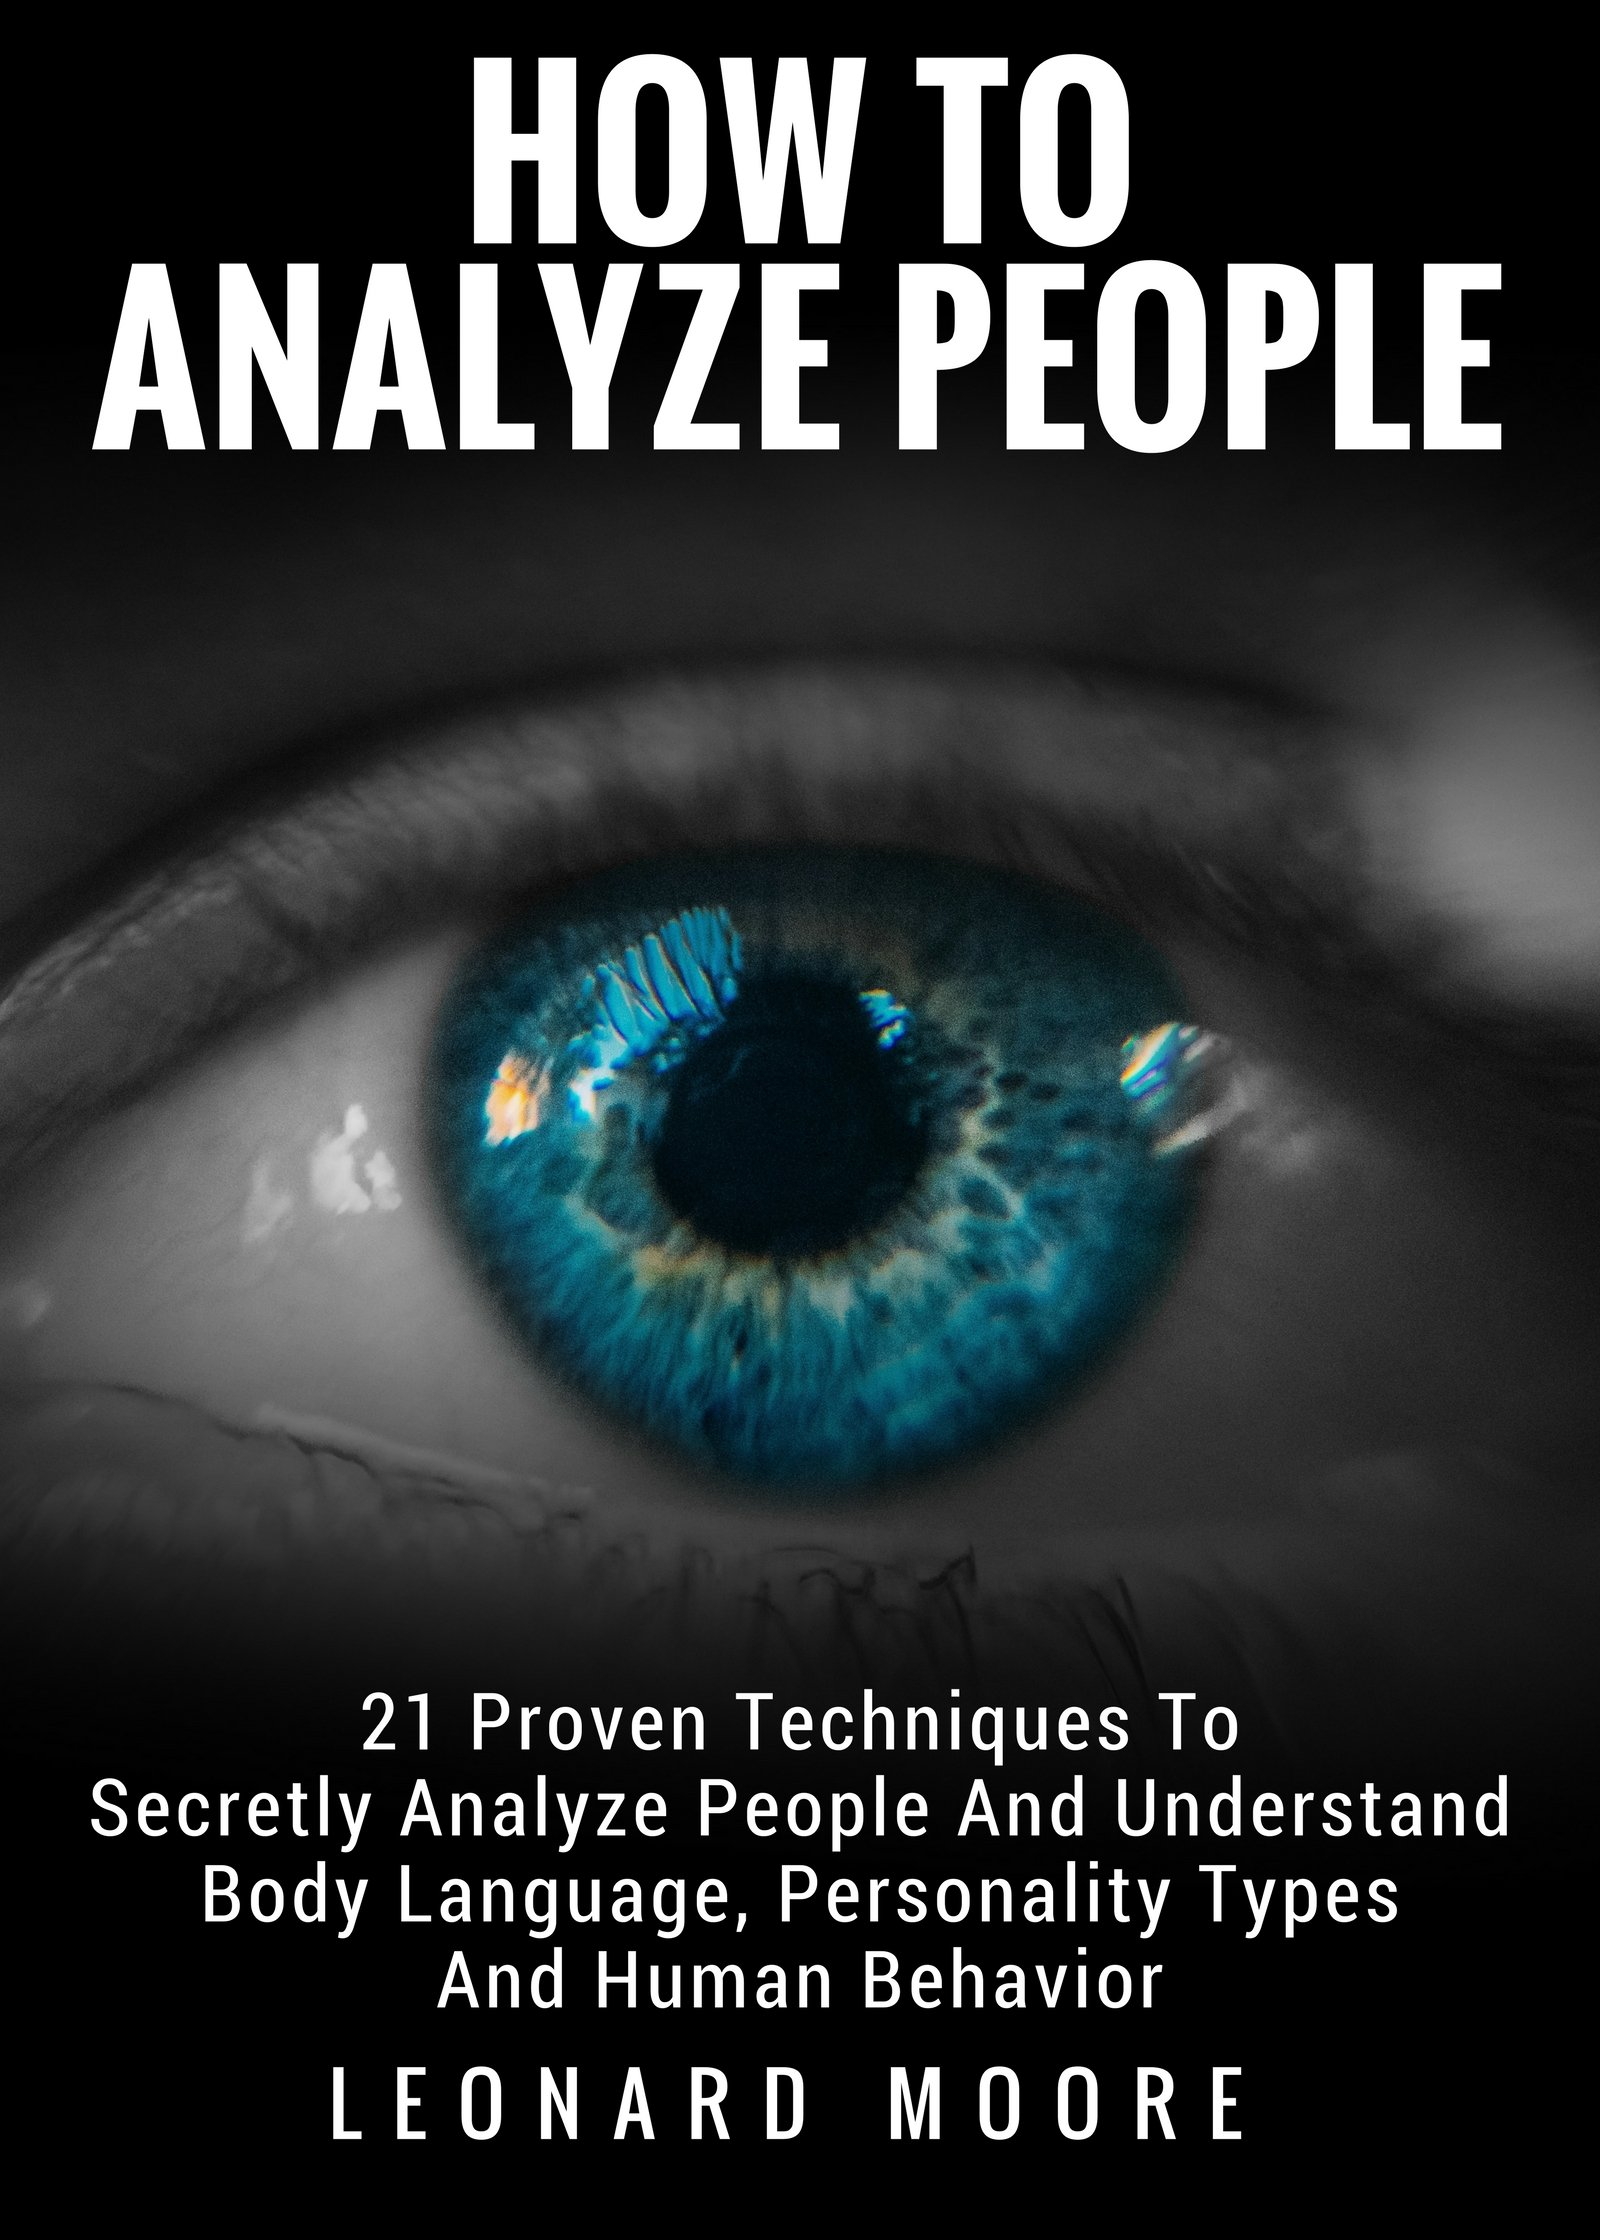 How To Analyze People  21 Proven Techniques To Secretly Analyze People And Understand Body Language Personality Types And Human Behavior  English Edition